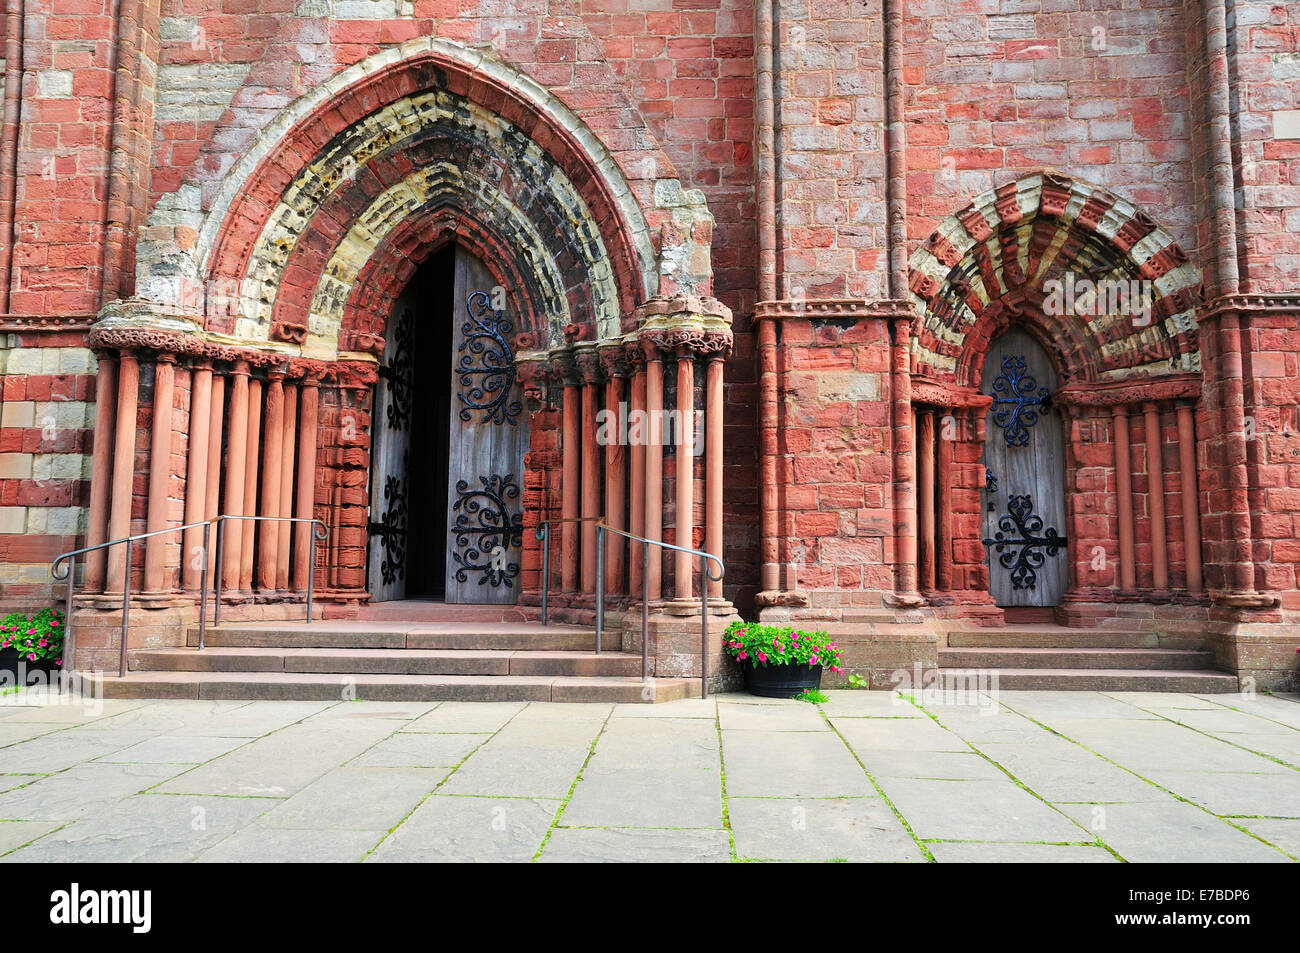 Portals of St. Magnus Cathedral, Romanesque and Norman architecture, 12th century, Kirkwall, Mainland, Orkney, Scotland - Stock Image